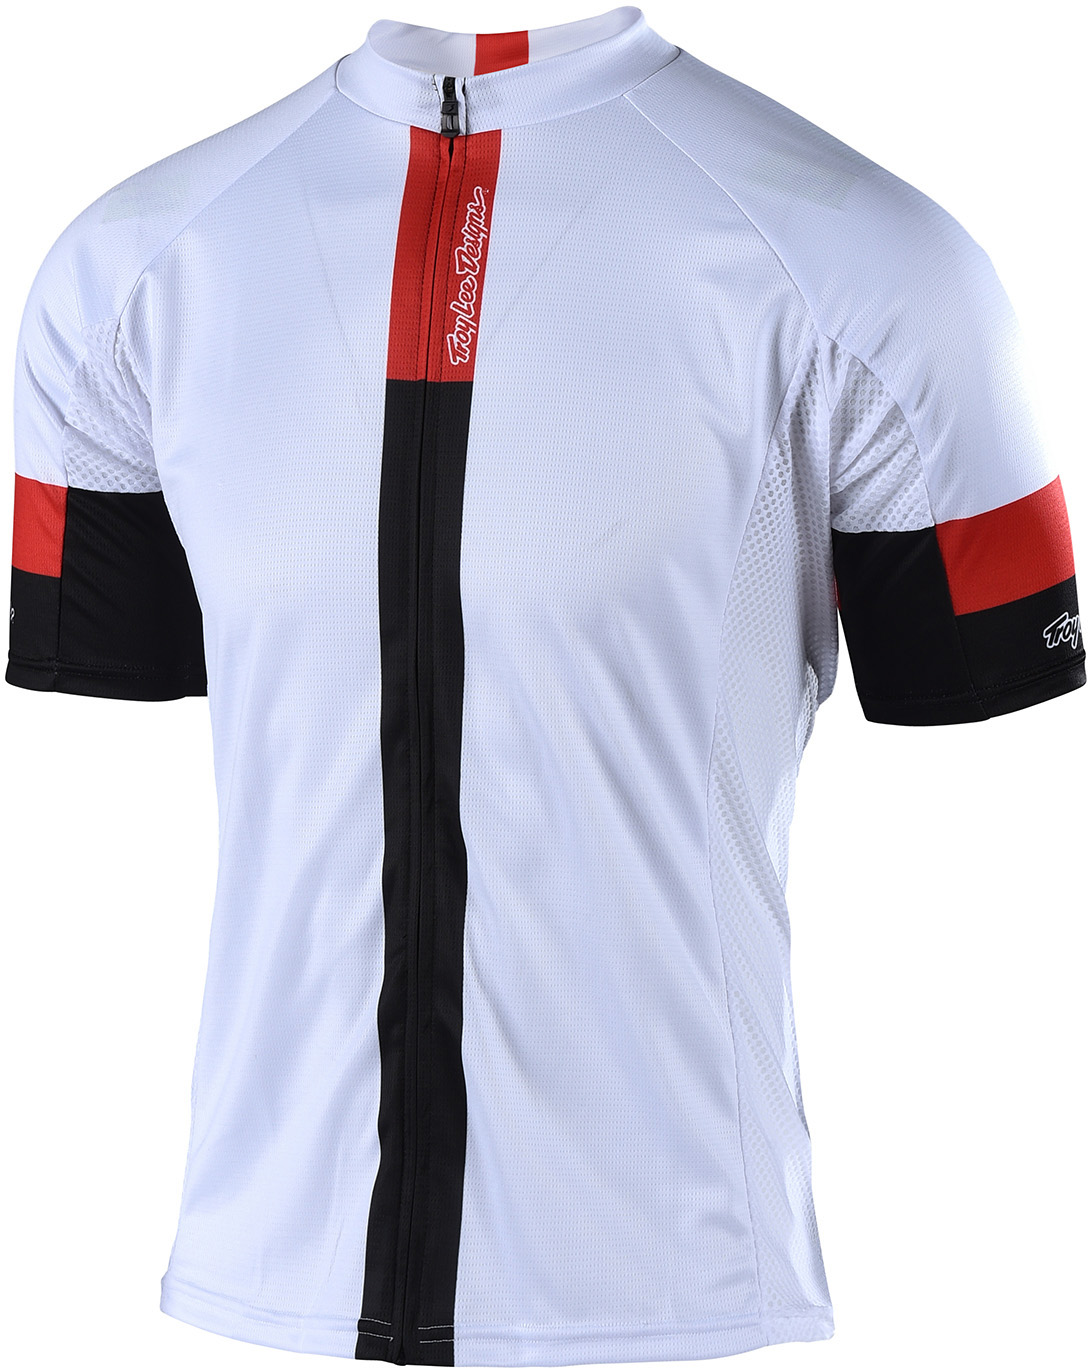 Troy Lee Designs Ace 2.0 Jersey | Jerseys